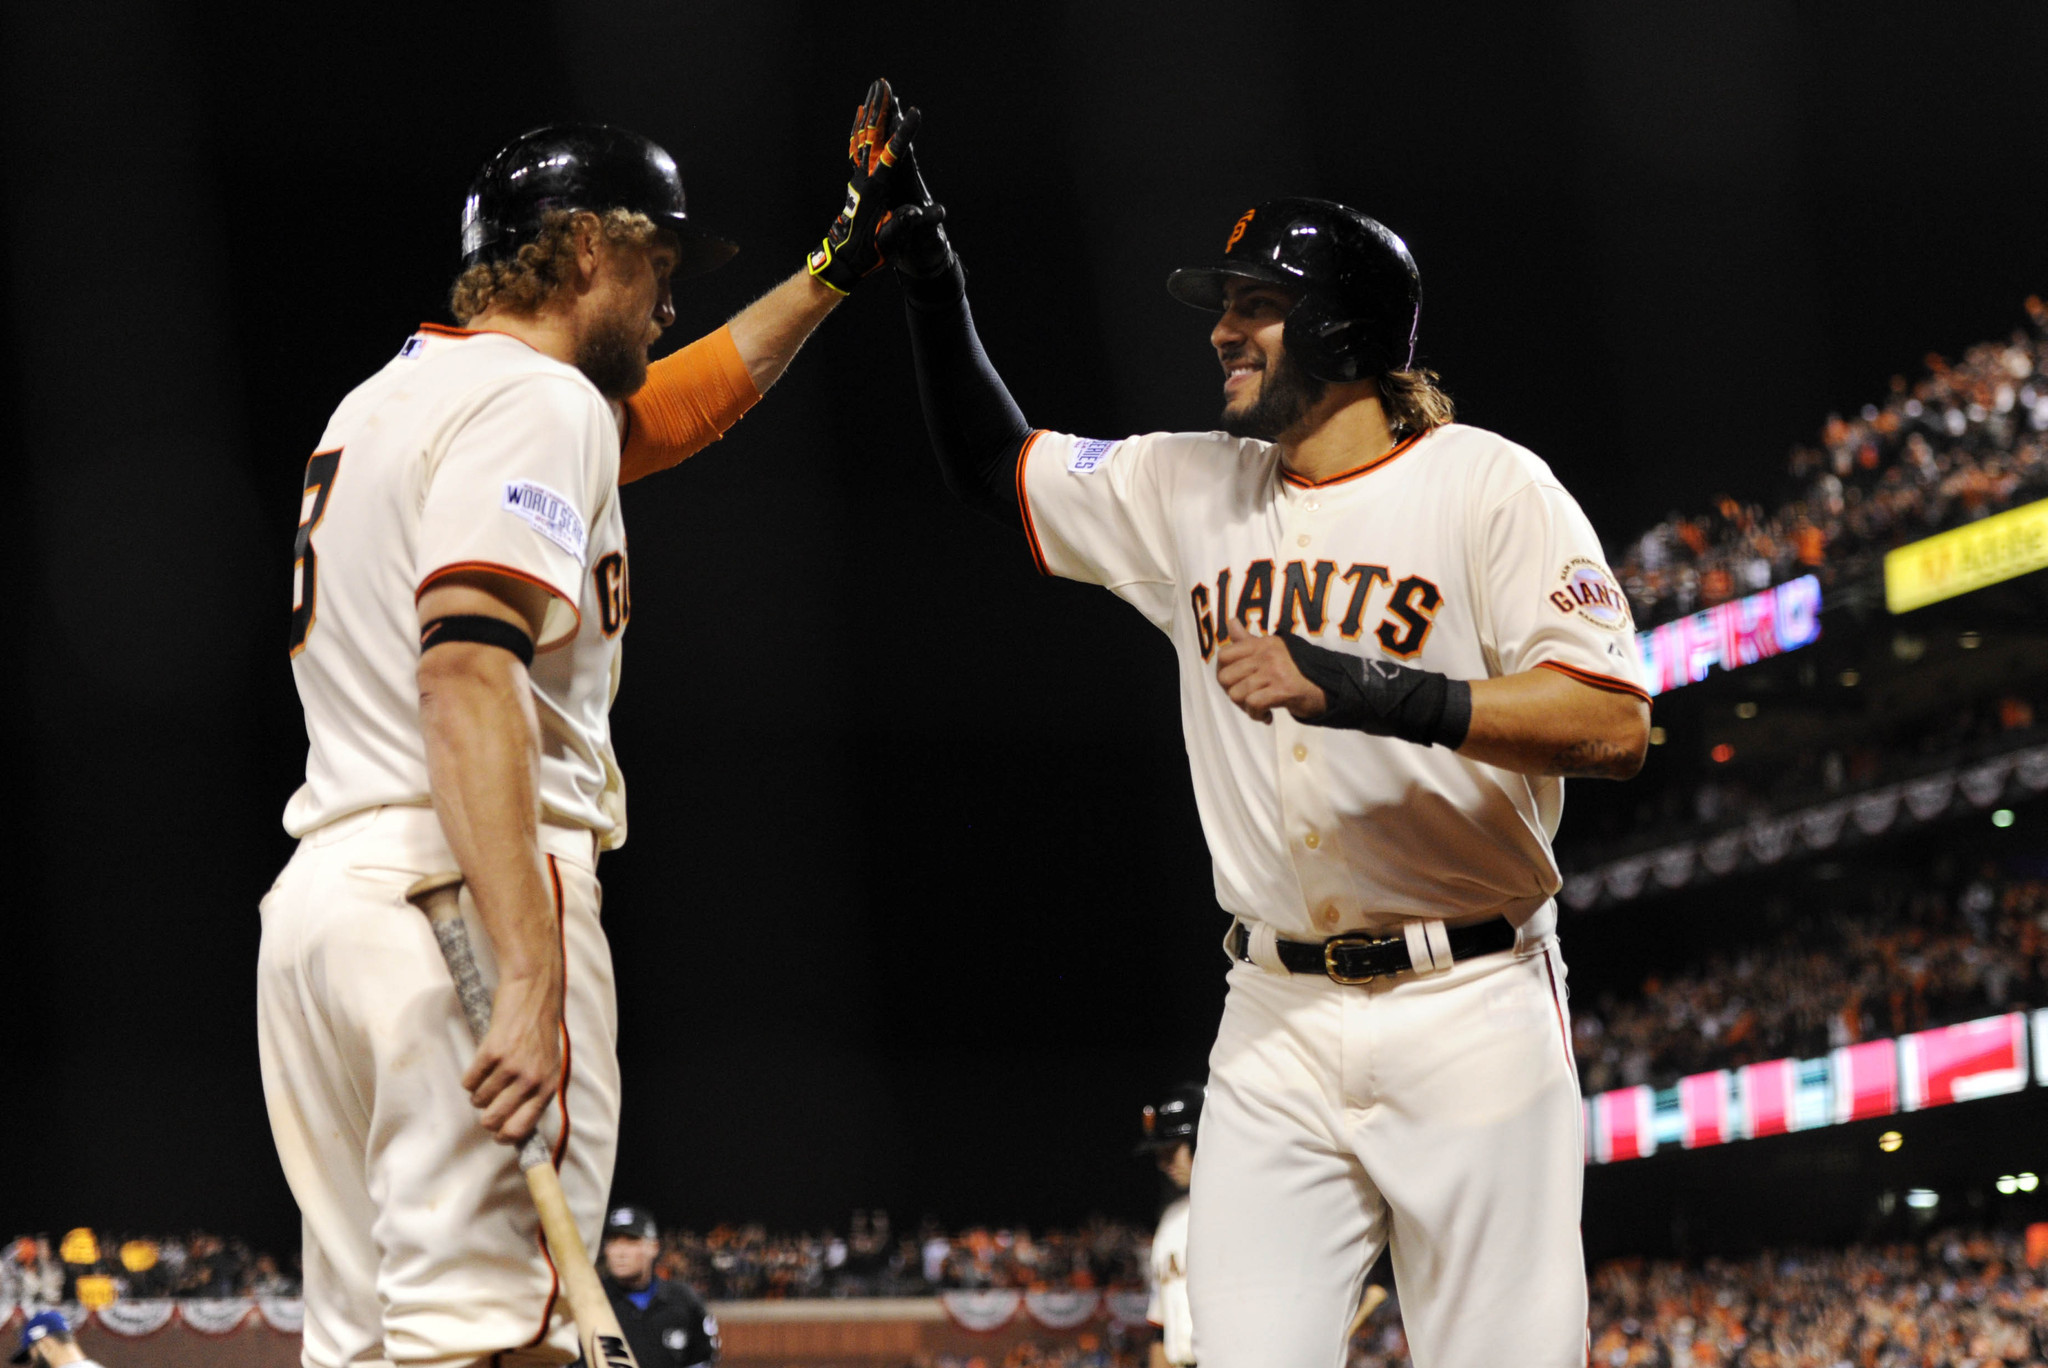 Bothersome tweet moot after Giants victory in Game 4